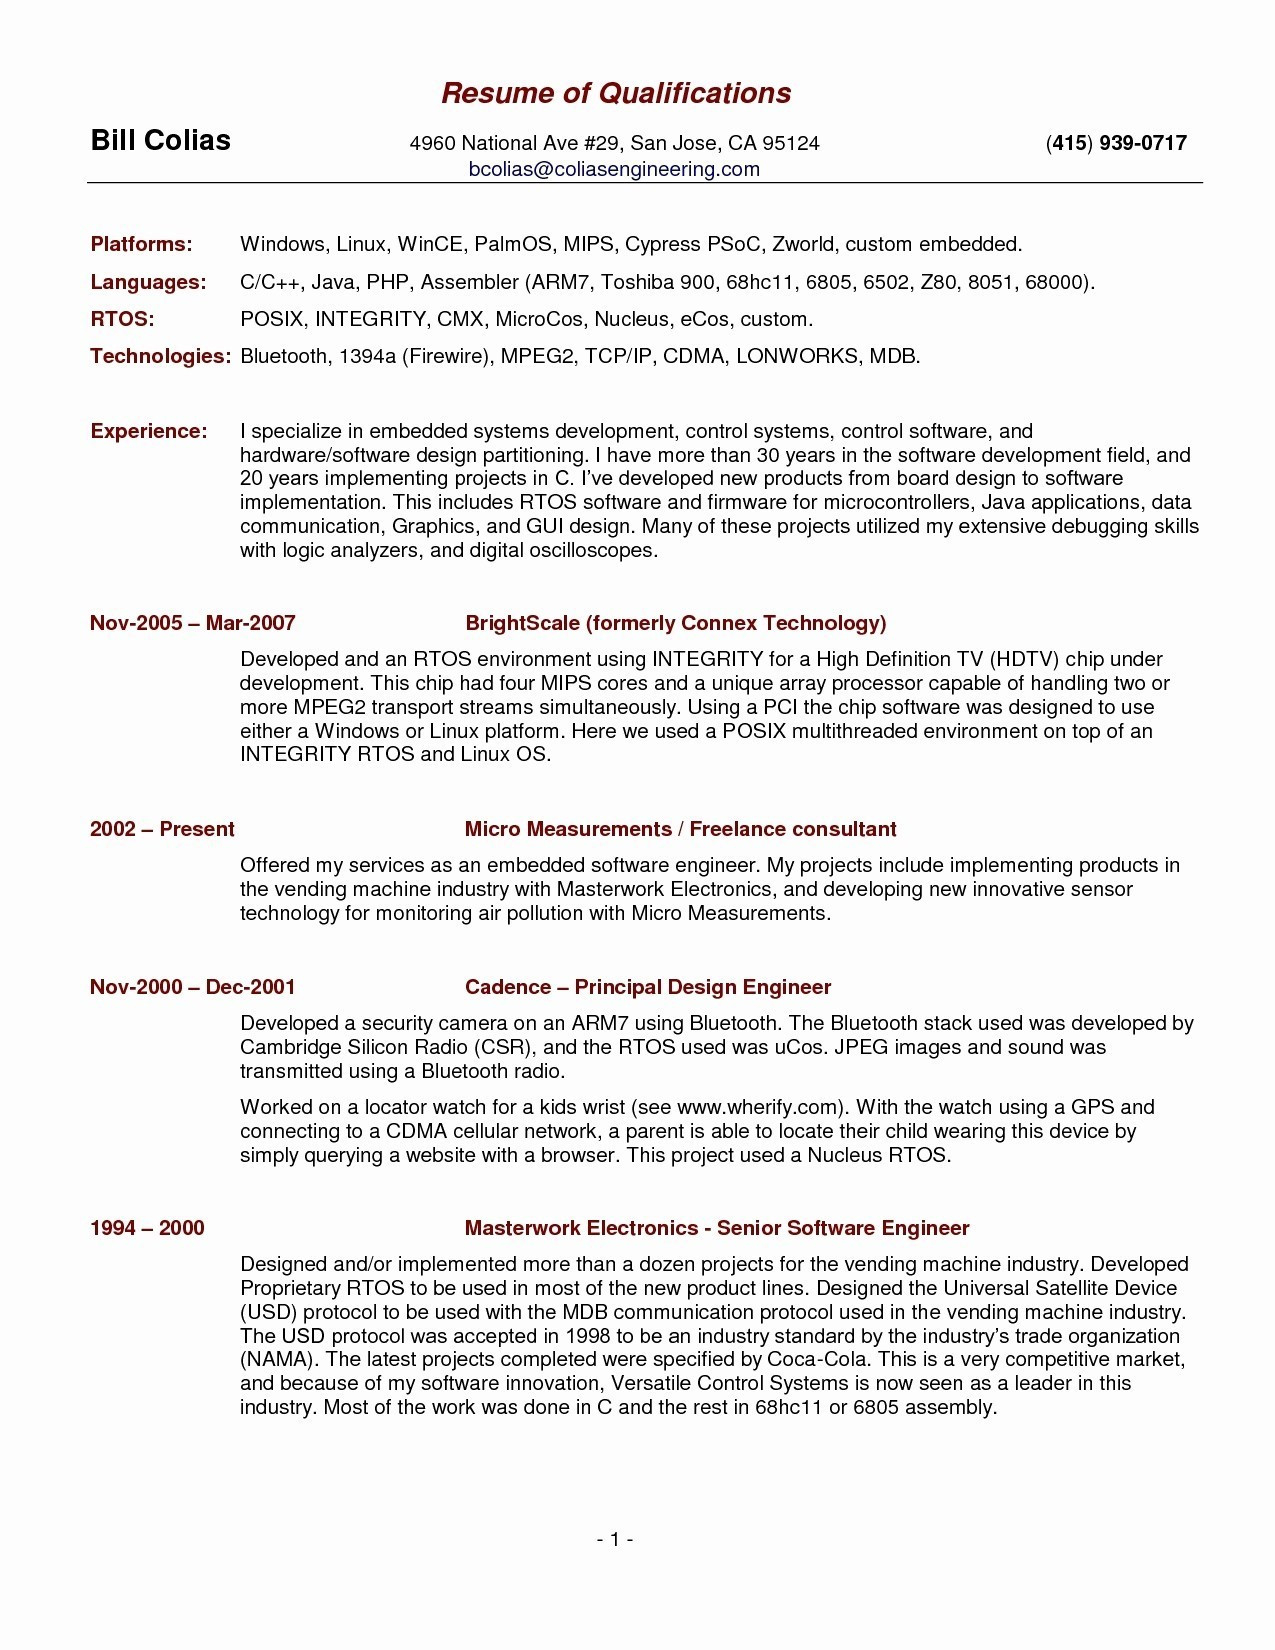 Dishwasher Resume Example - Busboy Resume Awesome Dishwasher Resume Samples Selo L Ink Best